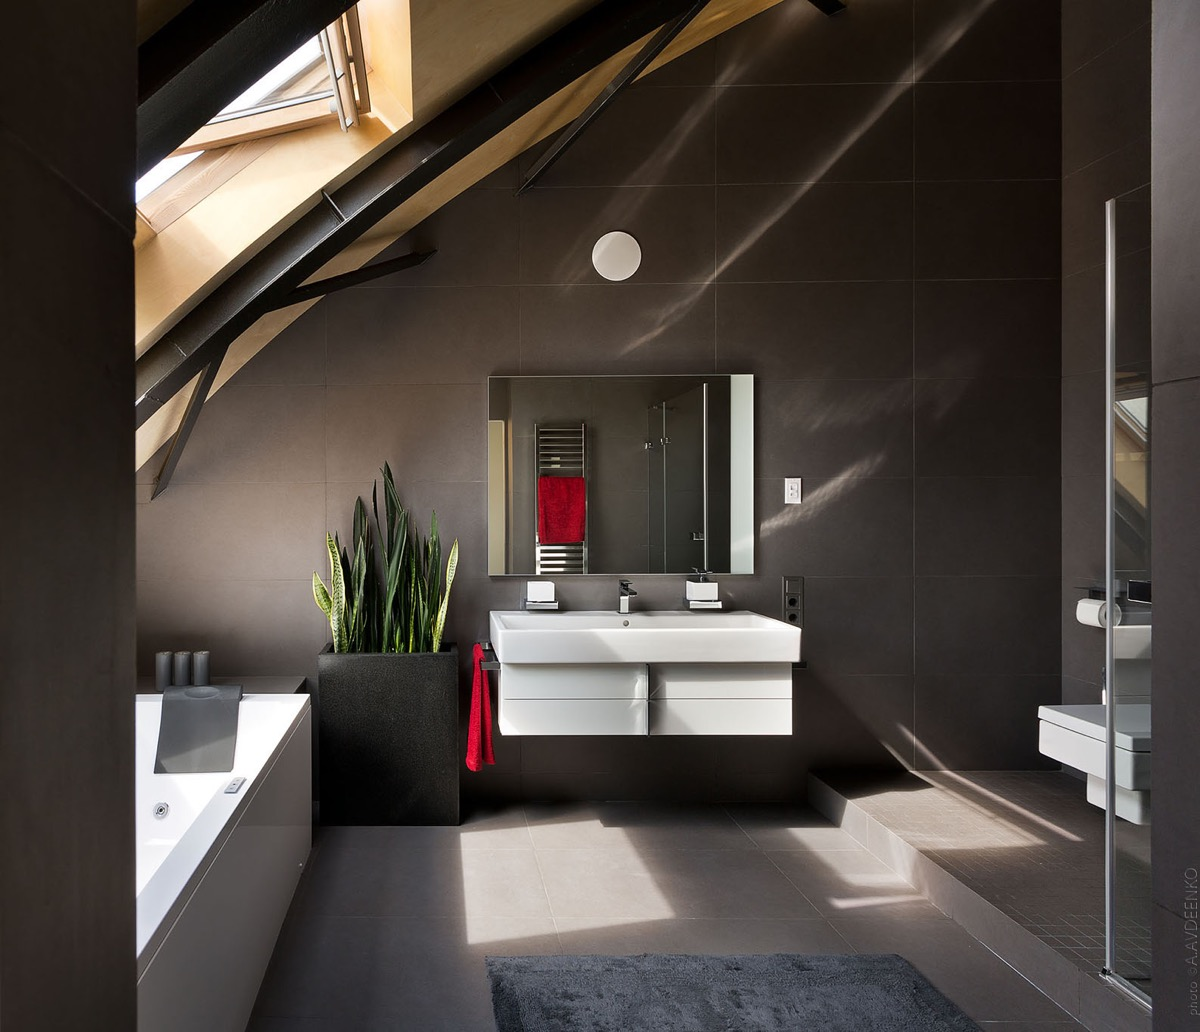 50 Luxury Bathrooms And Tips You Can Copy From Them images 31